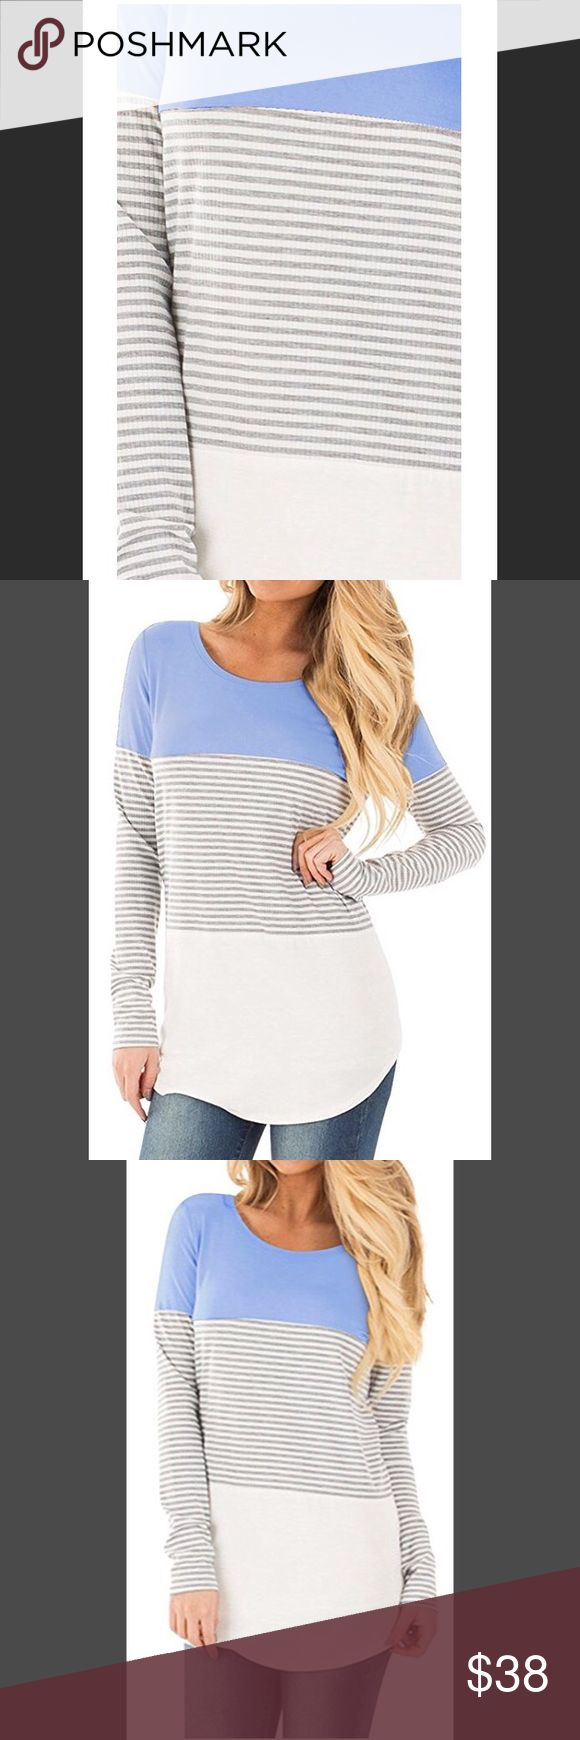 ‼️🆕‼️STYLIN/Color Block w/Lace Inset Tunic Tops Bring back effortlessly chic style with this gorgeous blouse!  Featuring a colorblock style bodice with Light Blue on top, Gray & white stripes in the middle, and a black and white striped bottom, it's simply a stunning look!   The soft and comfortable fabric will keep you feeling amazing all day long, too!  Just add jeans/legging and boots for a beautifully chic fall combination! (And you can even transition this piece into fall - what a…